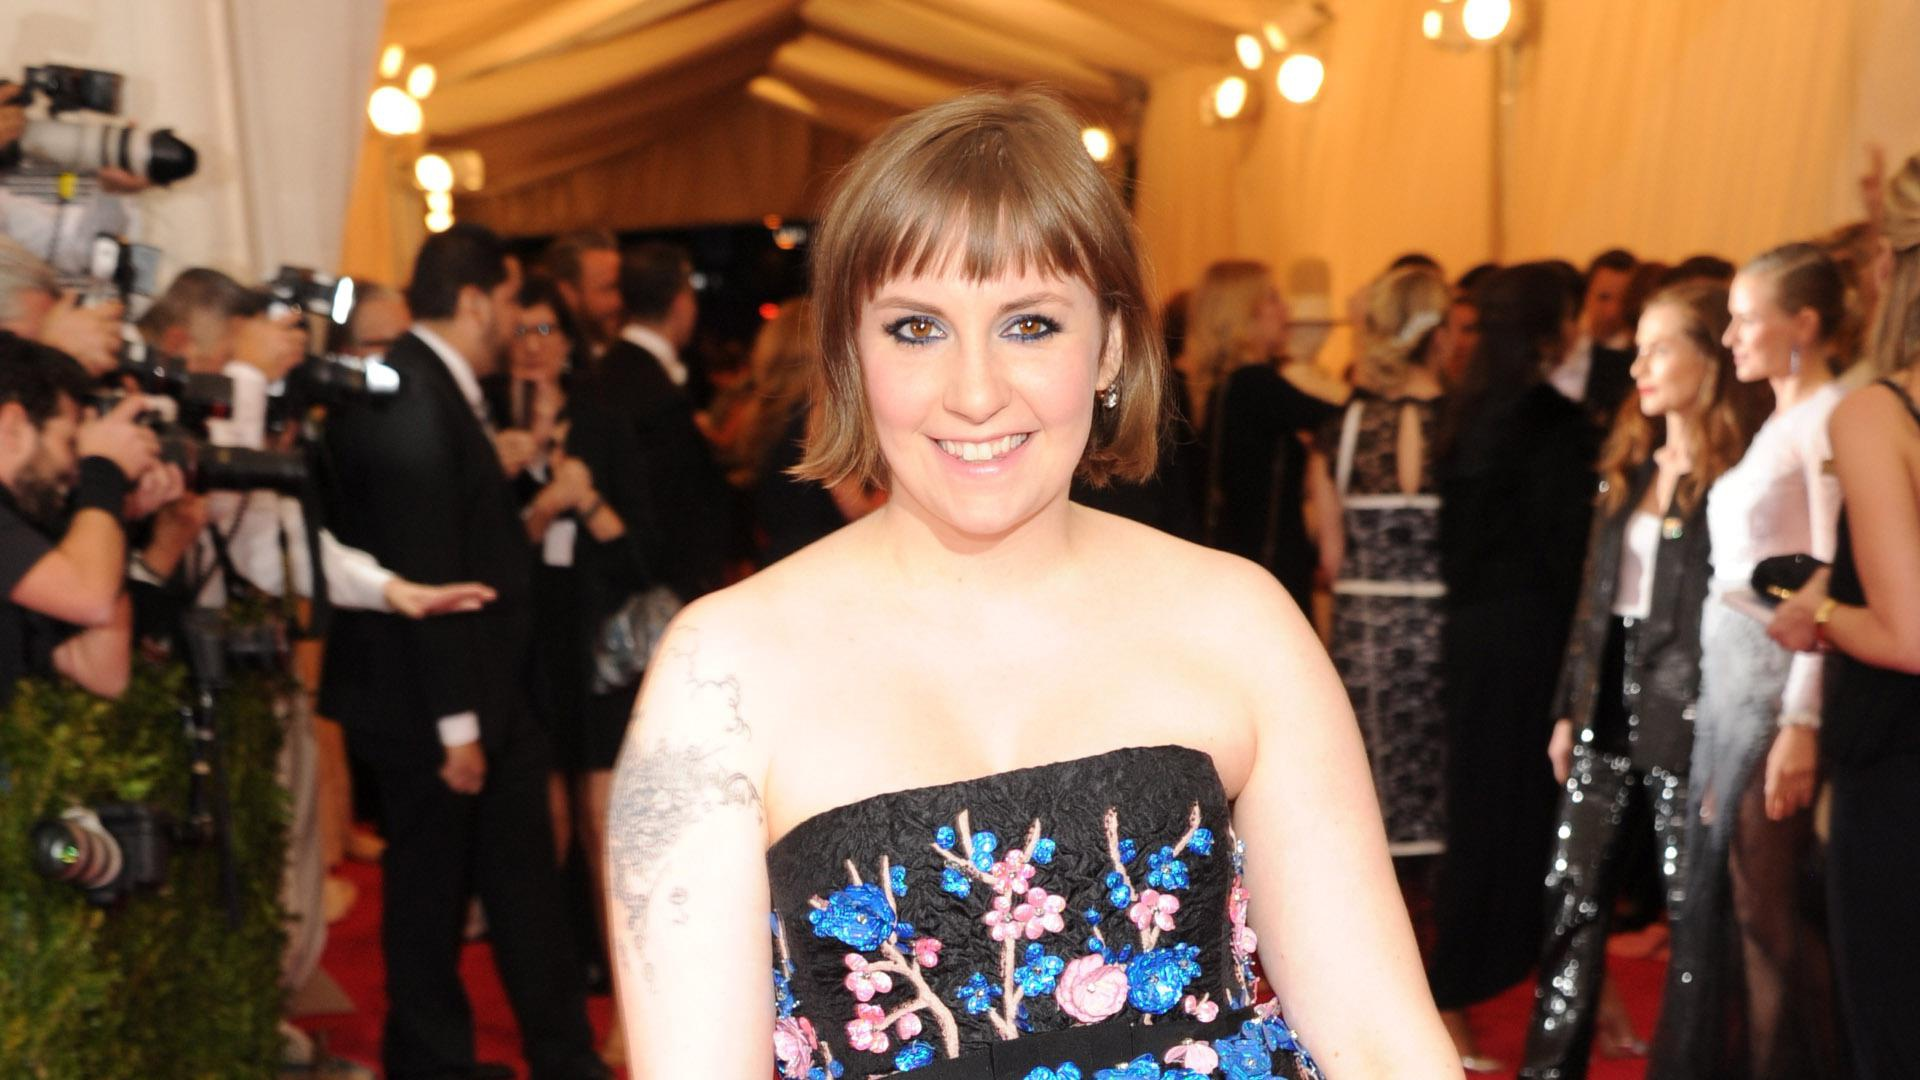 Lena Dunham has a new bowl cut, but there's more